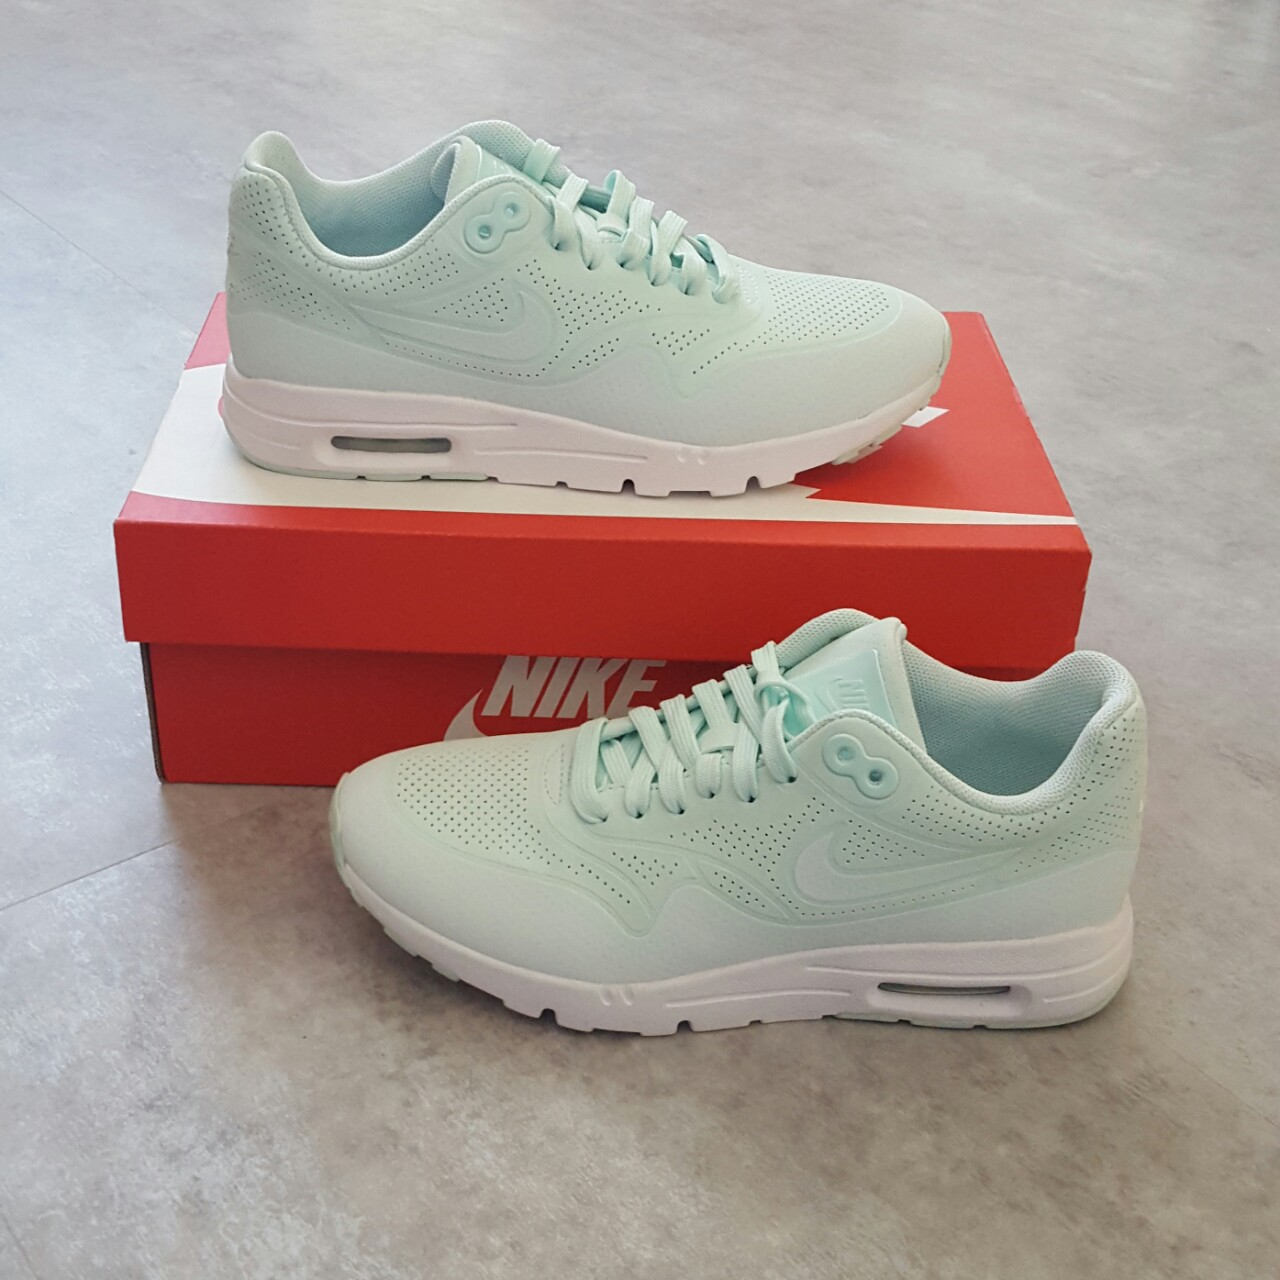 NIKE AIR MAX 1 ULTRA MOIRE IN FIBERGLASS MINT AND